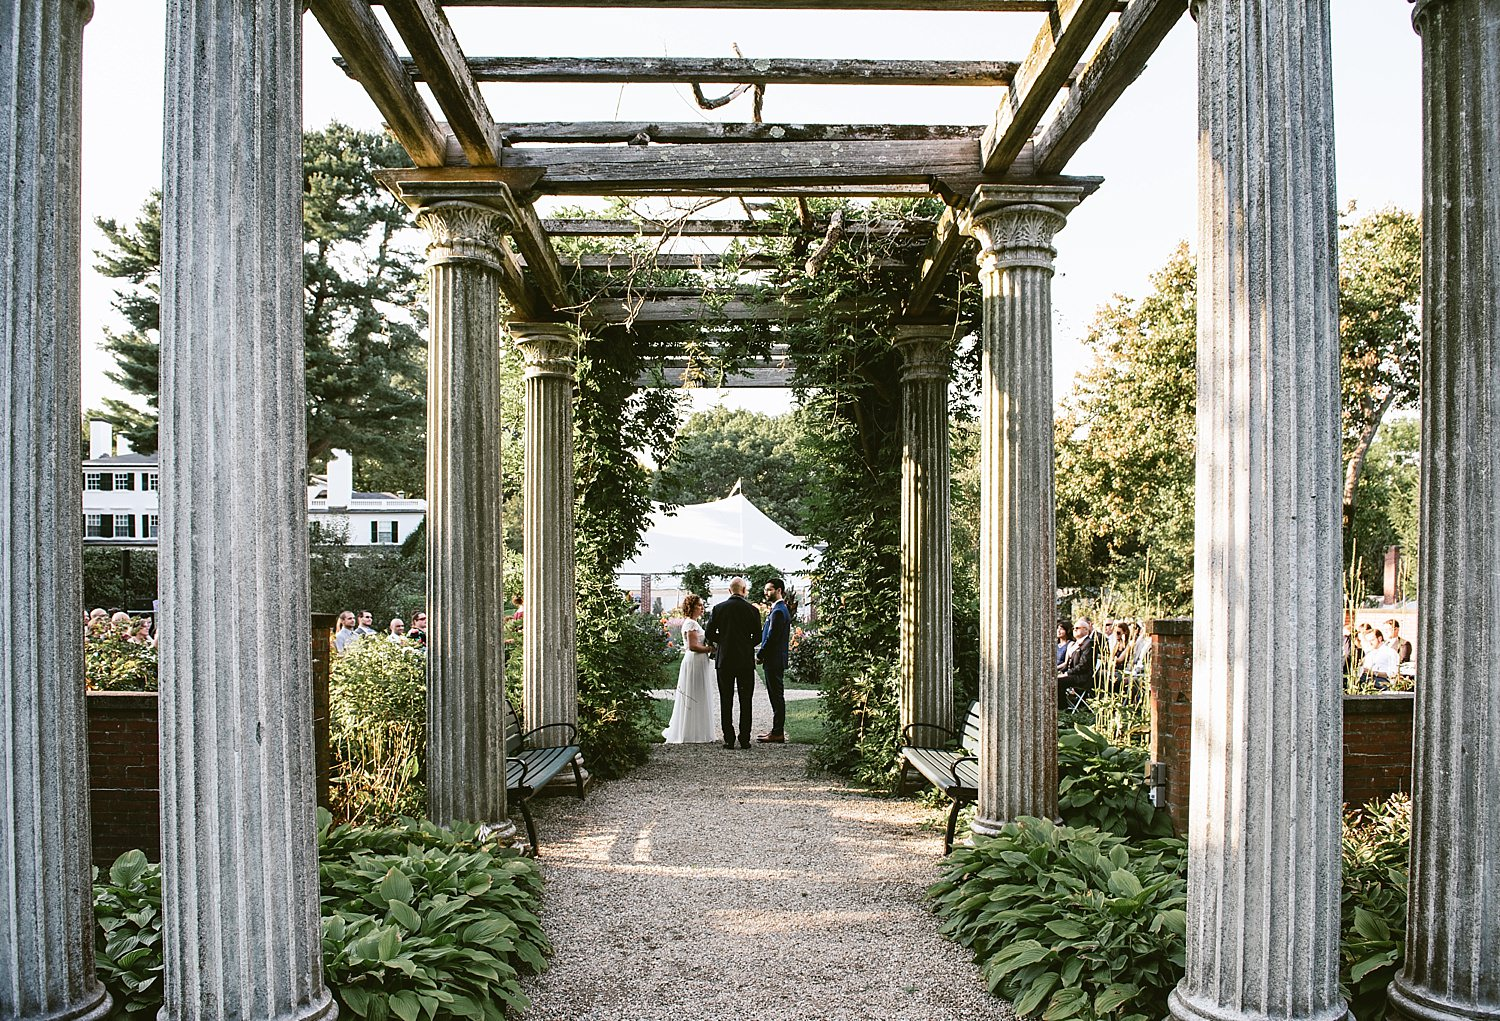 Wedding Ceremony under colonnade